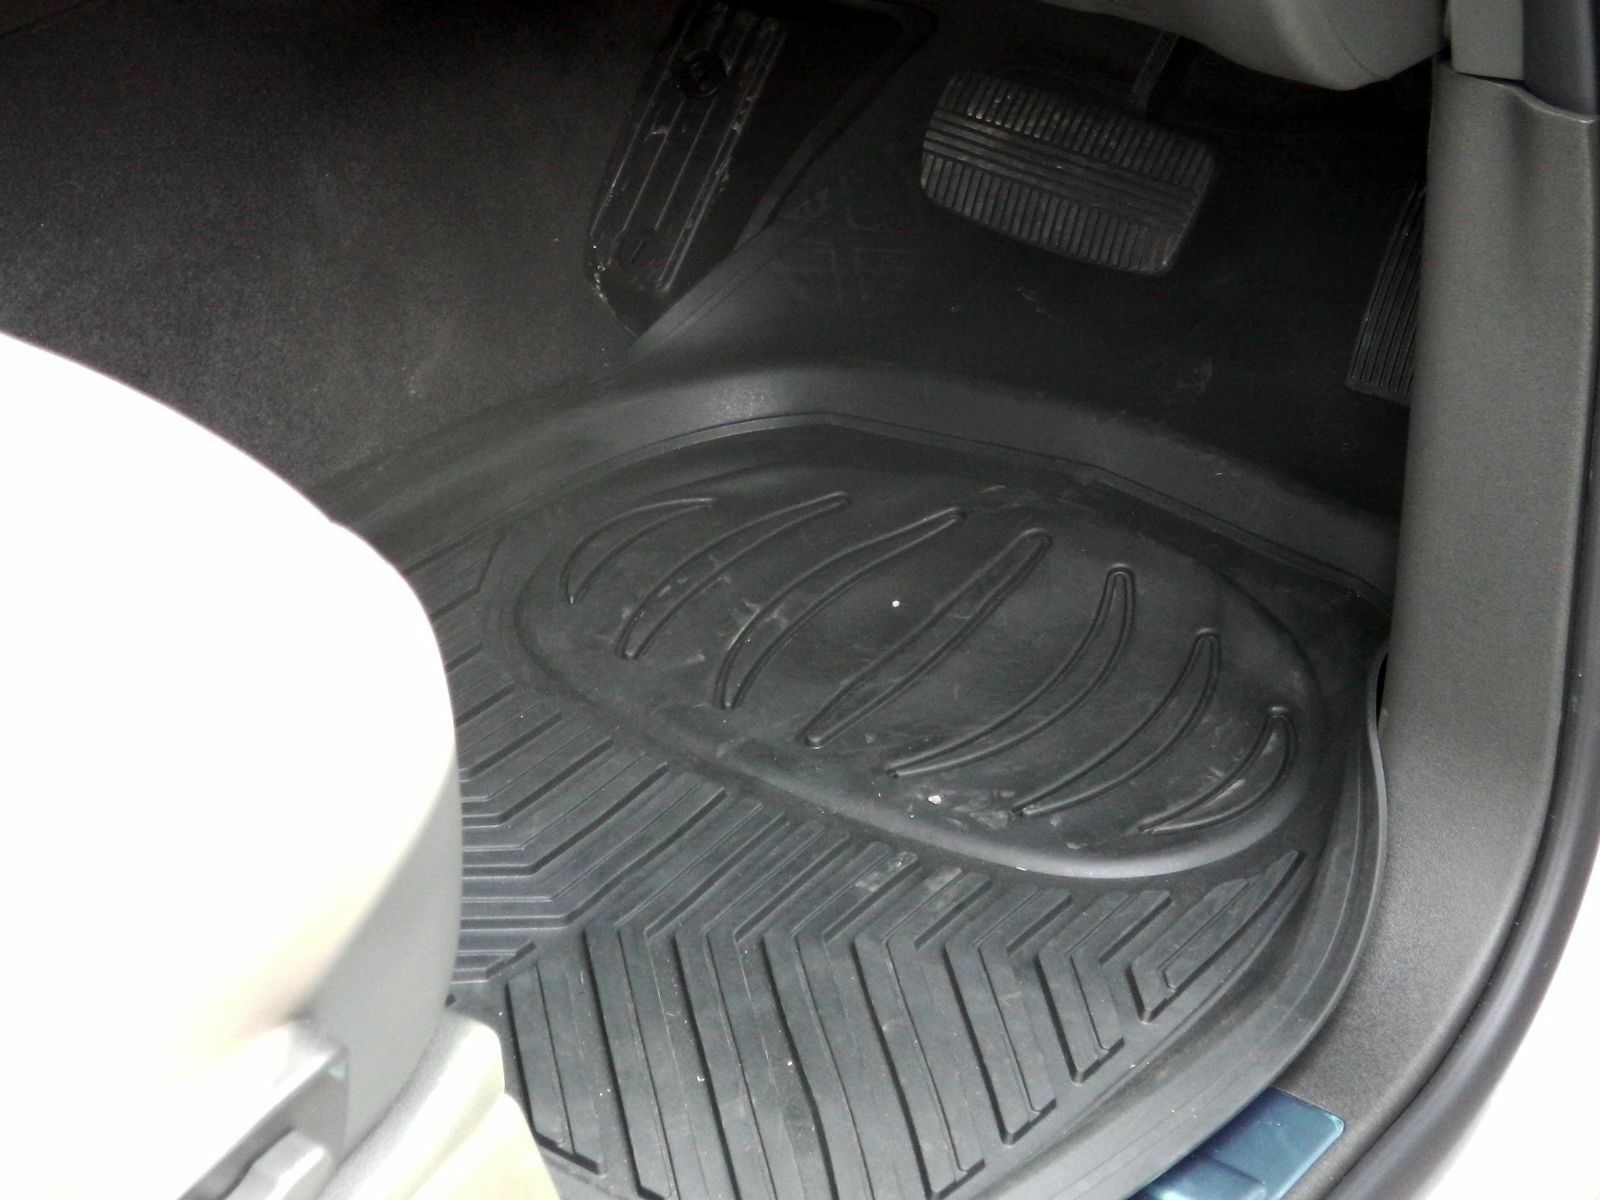 Ford Ranger Dirt Catcher Floor Mats Deep Tray Rubber Mud